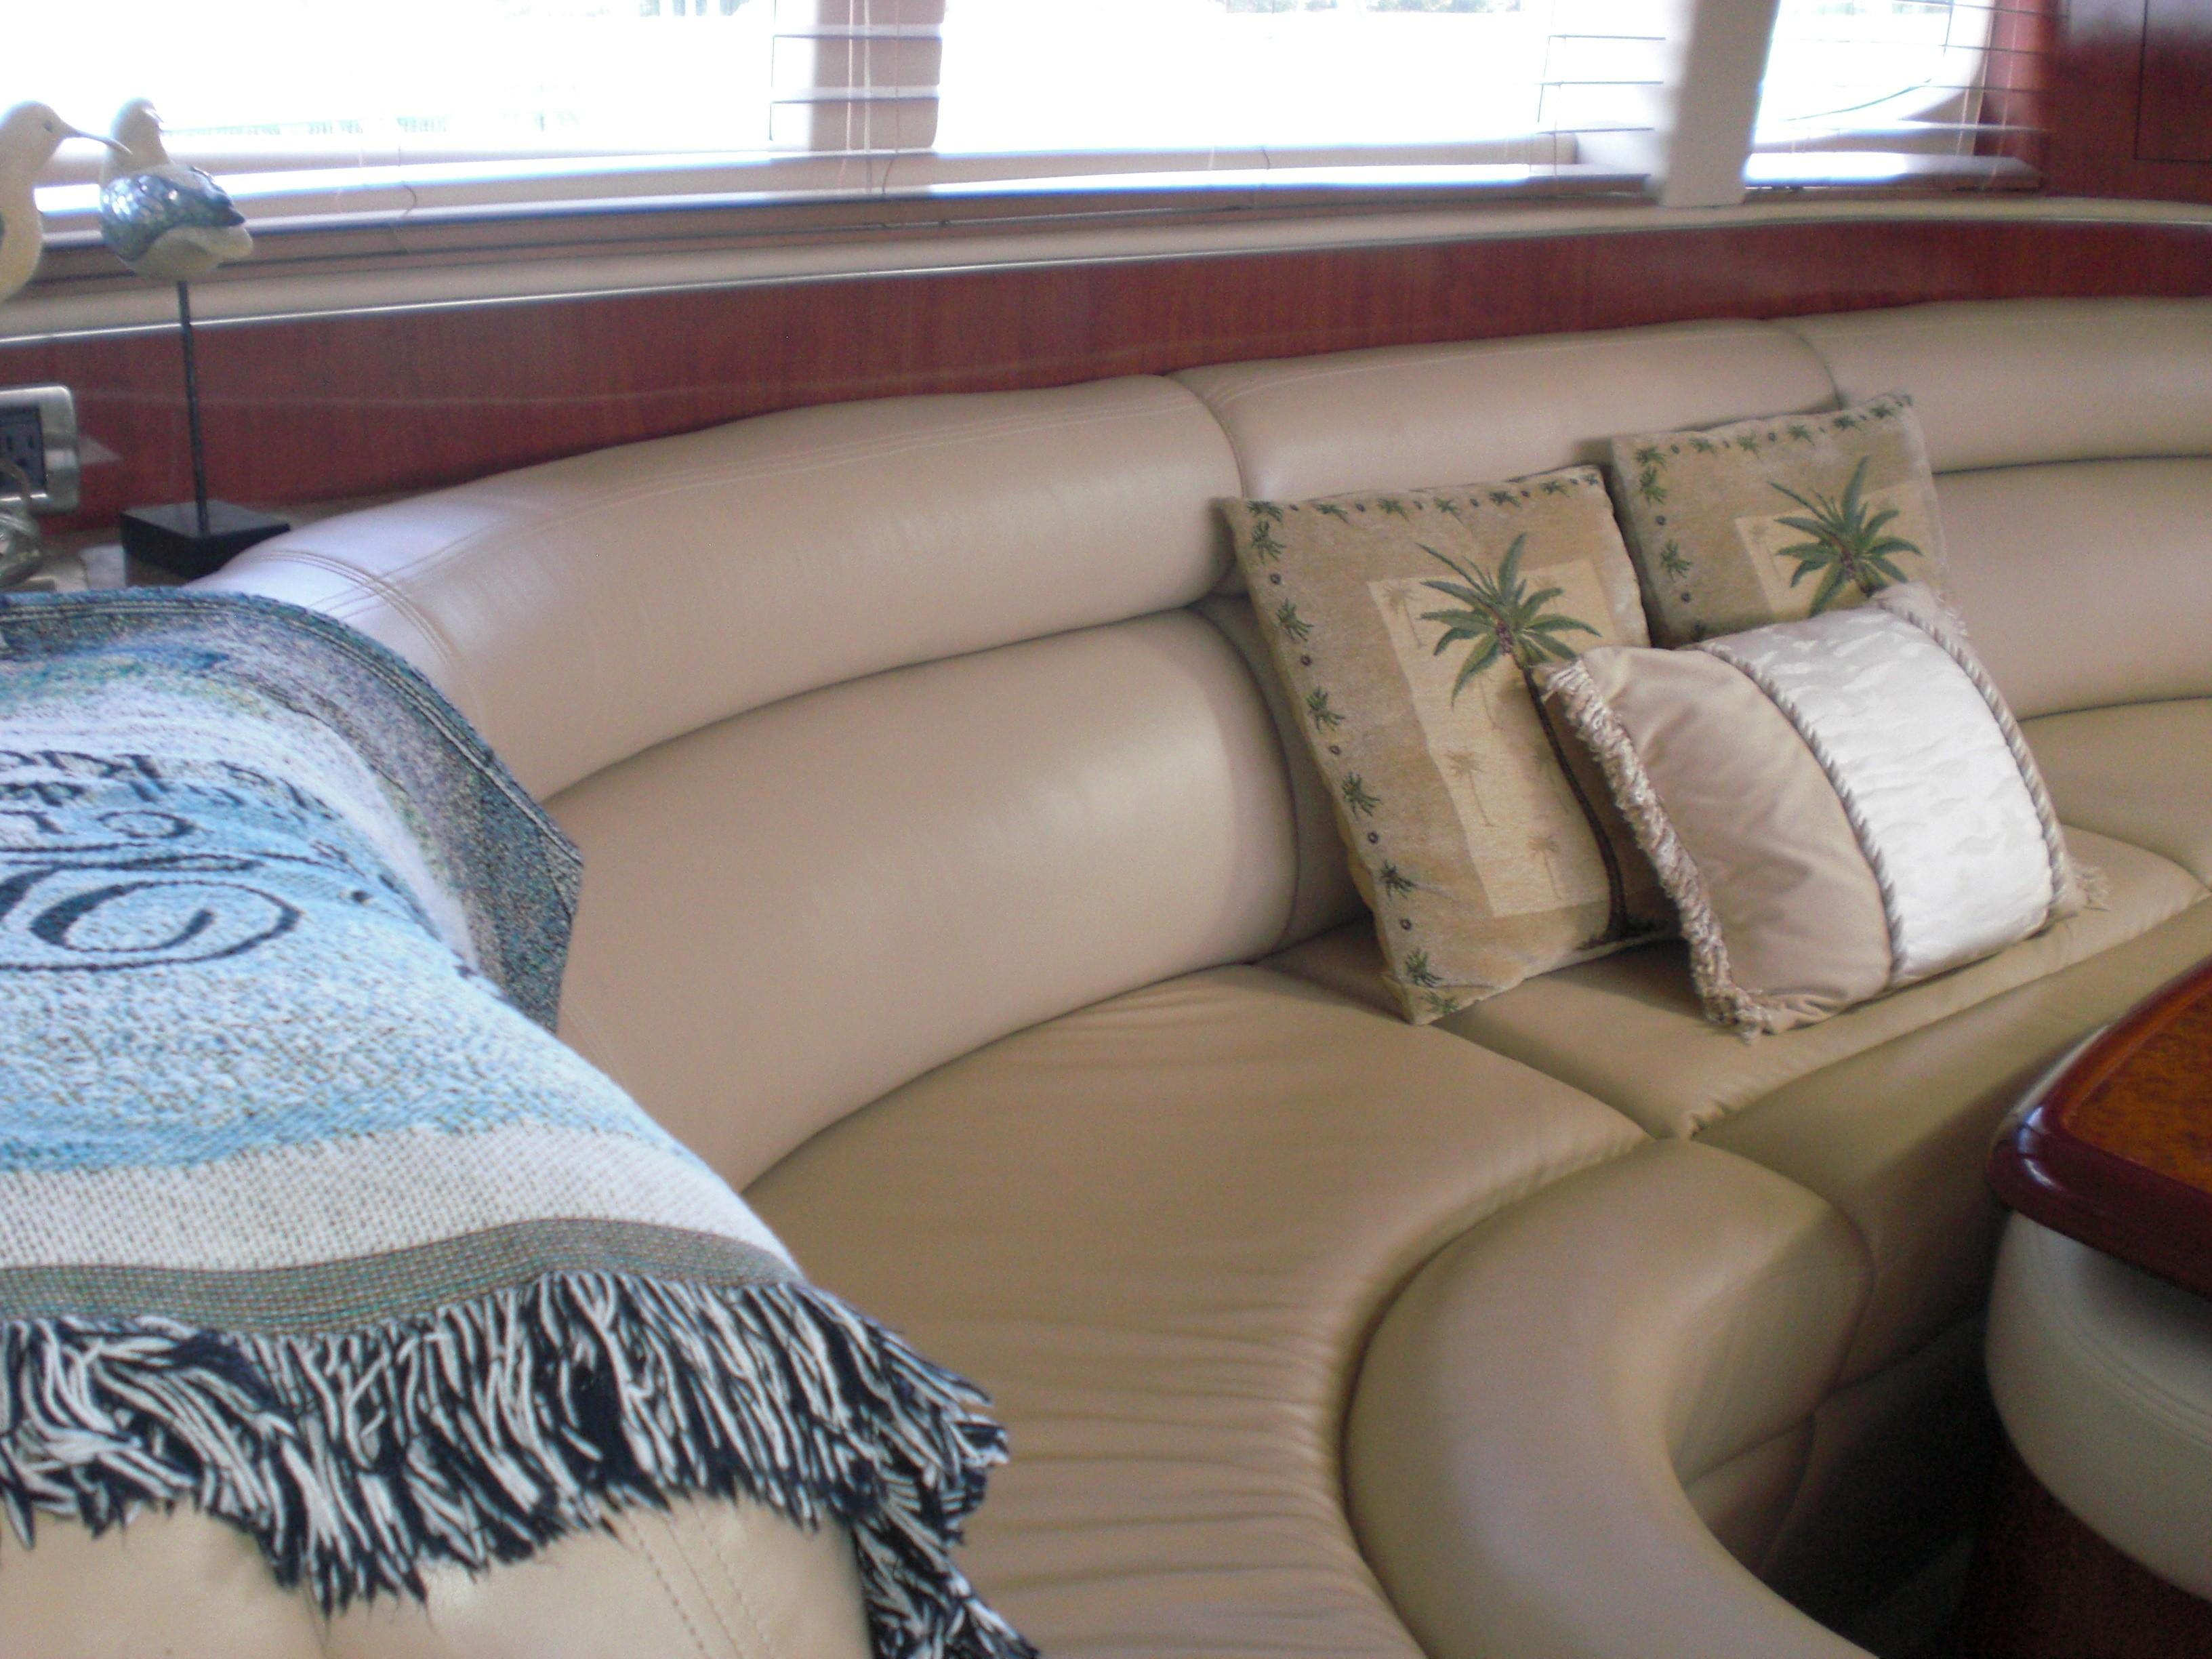 Sea Ray 480 Motor Yacht - Salon Sofa